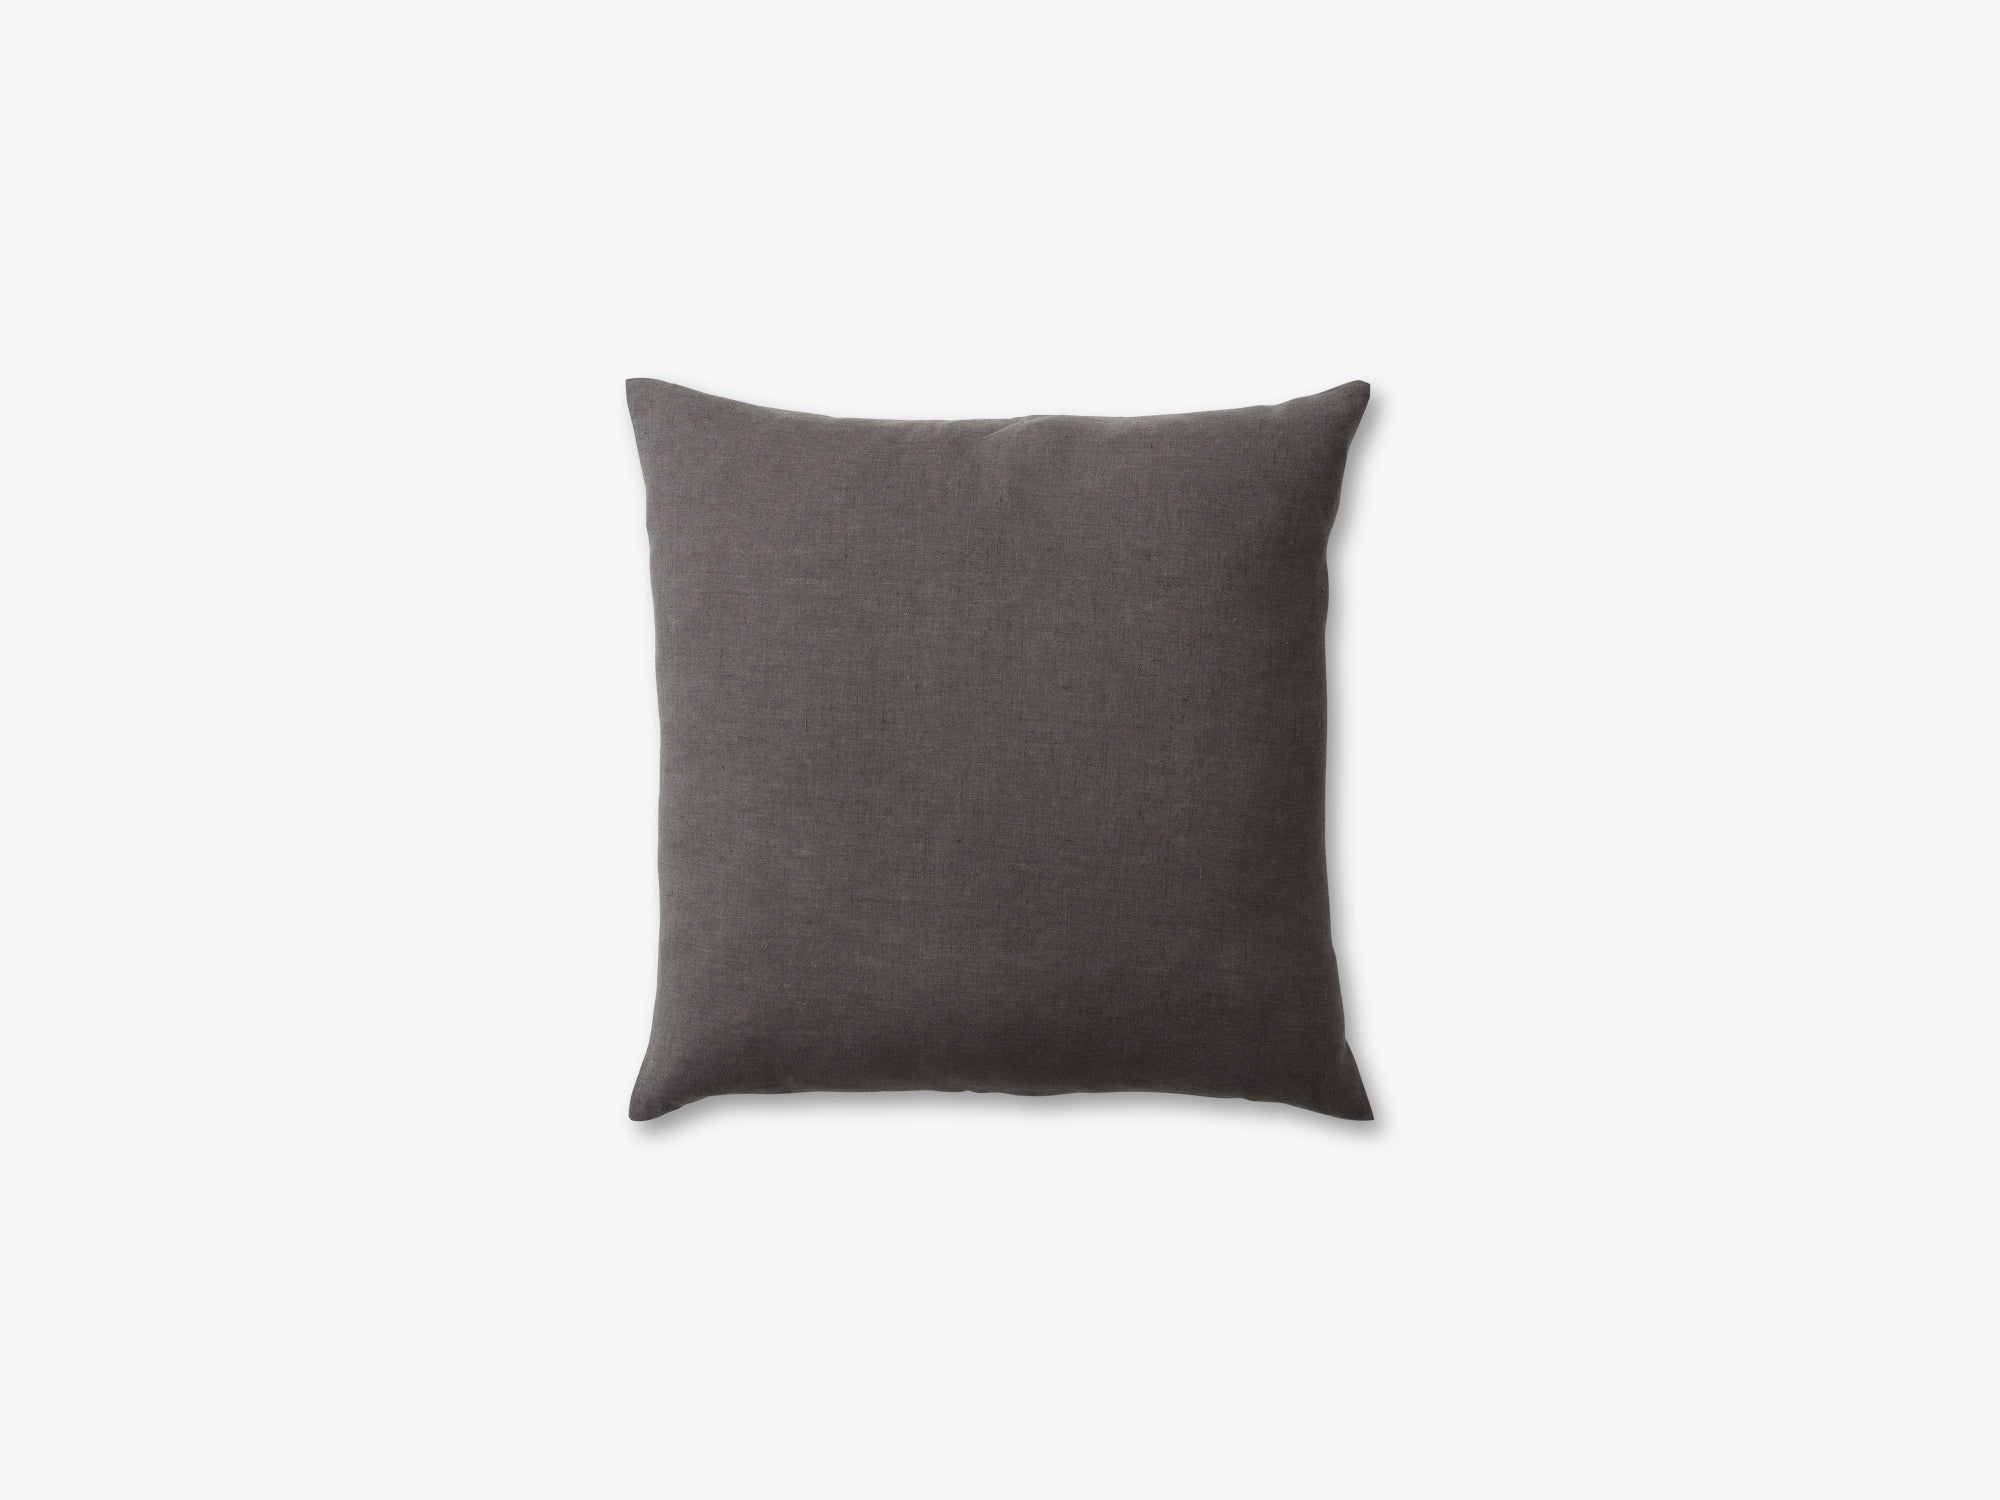 Collect Cushion SC28 - 50x50, Slate/Linen fra &tradition